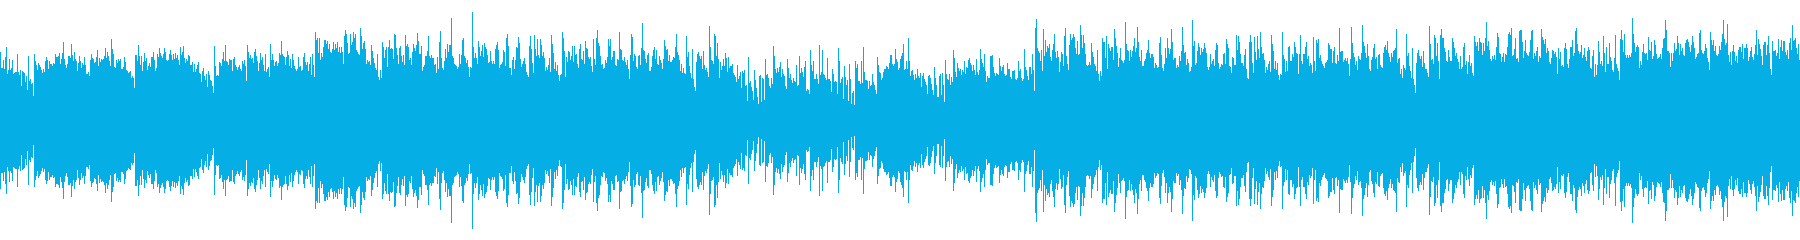 Loop, fashionable and gorgeous woman, R & B's reproduced waveform